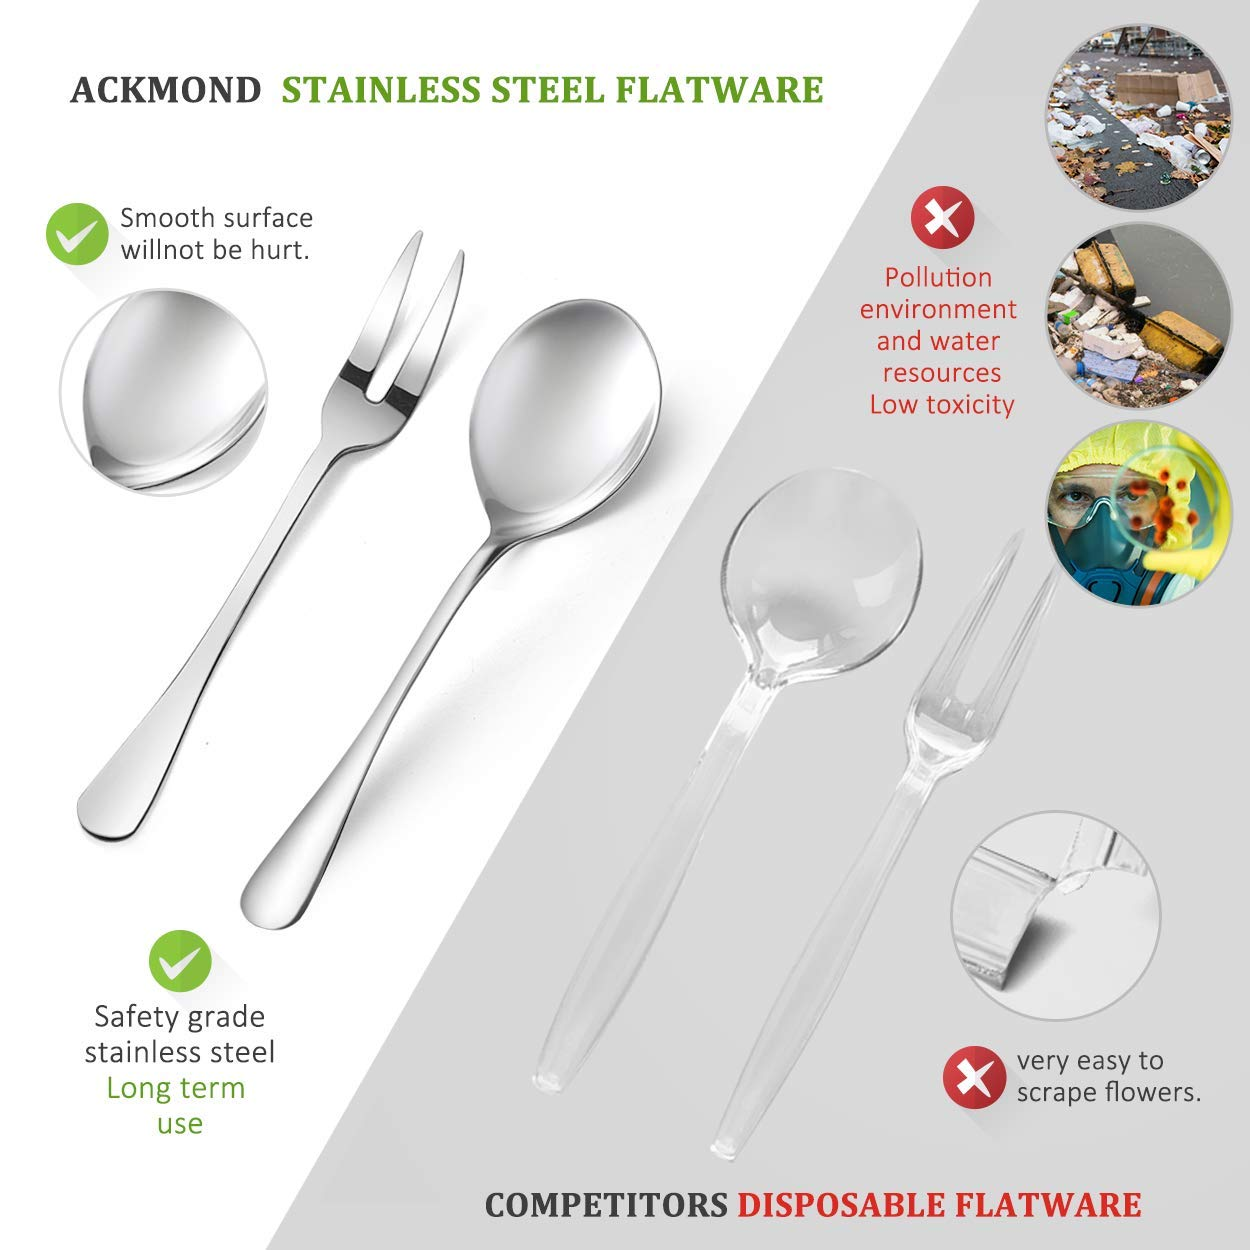 Stainless Steel Metal Serving Utensils - Set of 9-10'' Spoons, 10'' Forks, and 7'' Tongs by Teivio by Teivio (Image #3)